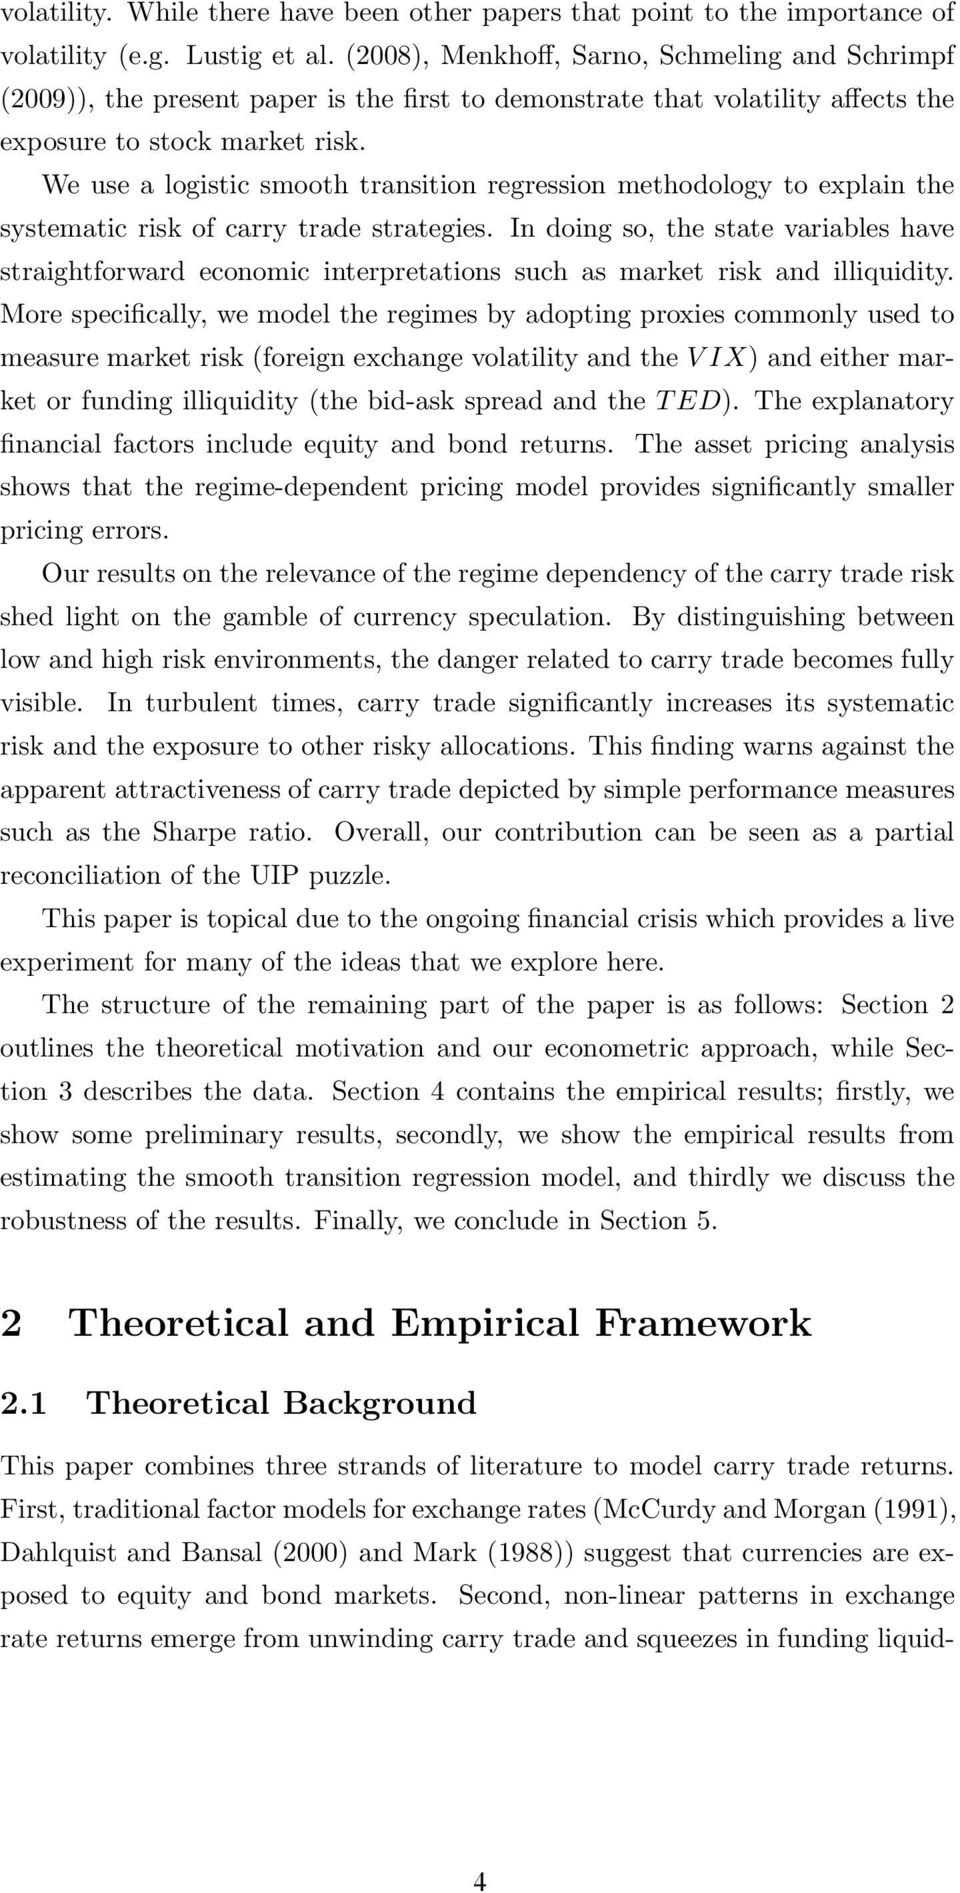 We use a logistic smooth transition regression methodology to explain the systematic risk of carry trade strategies.